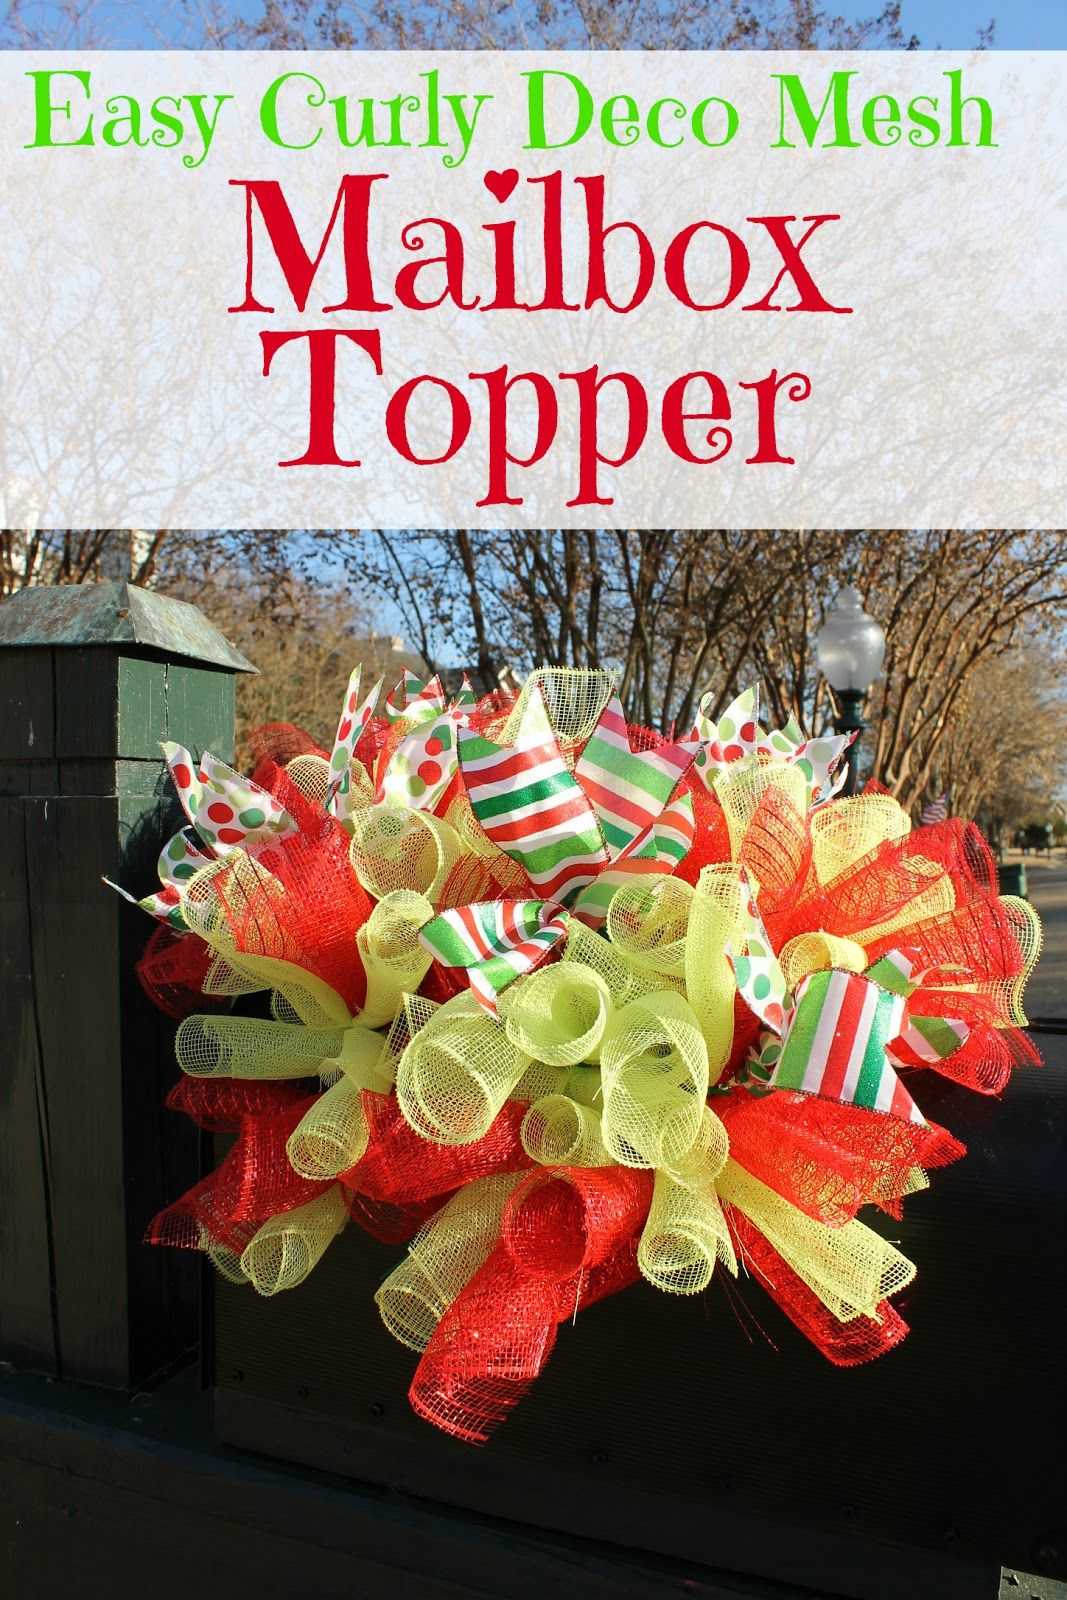 Curly Deco Mesh Mailbox Topper